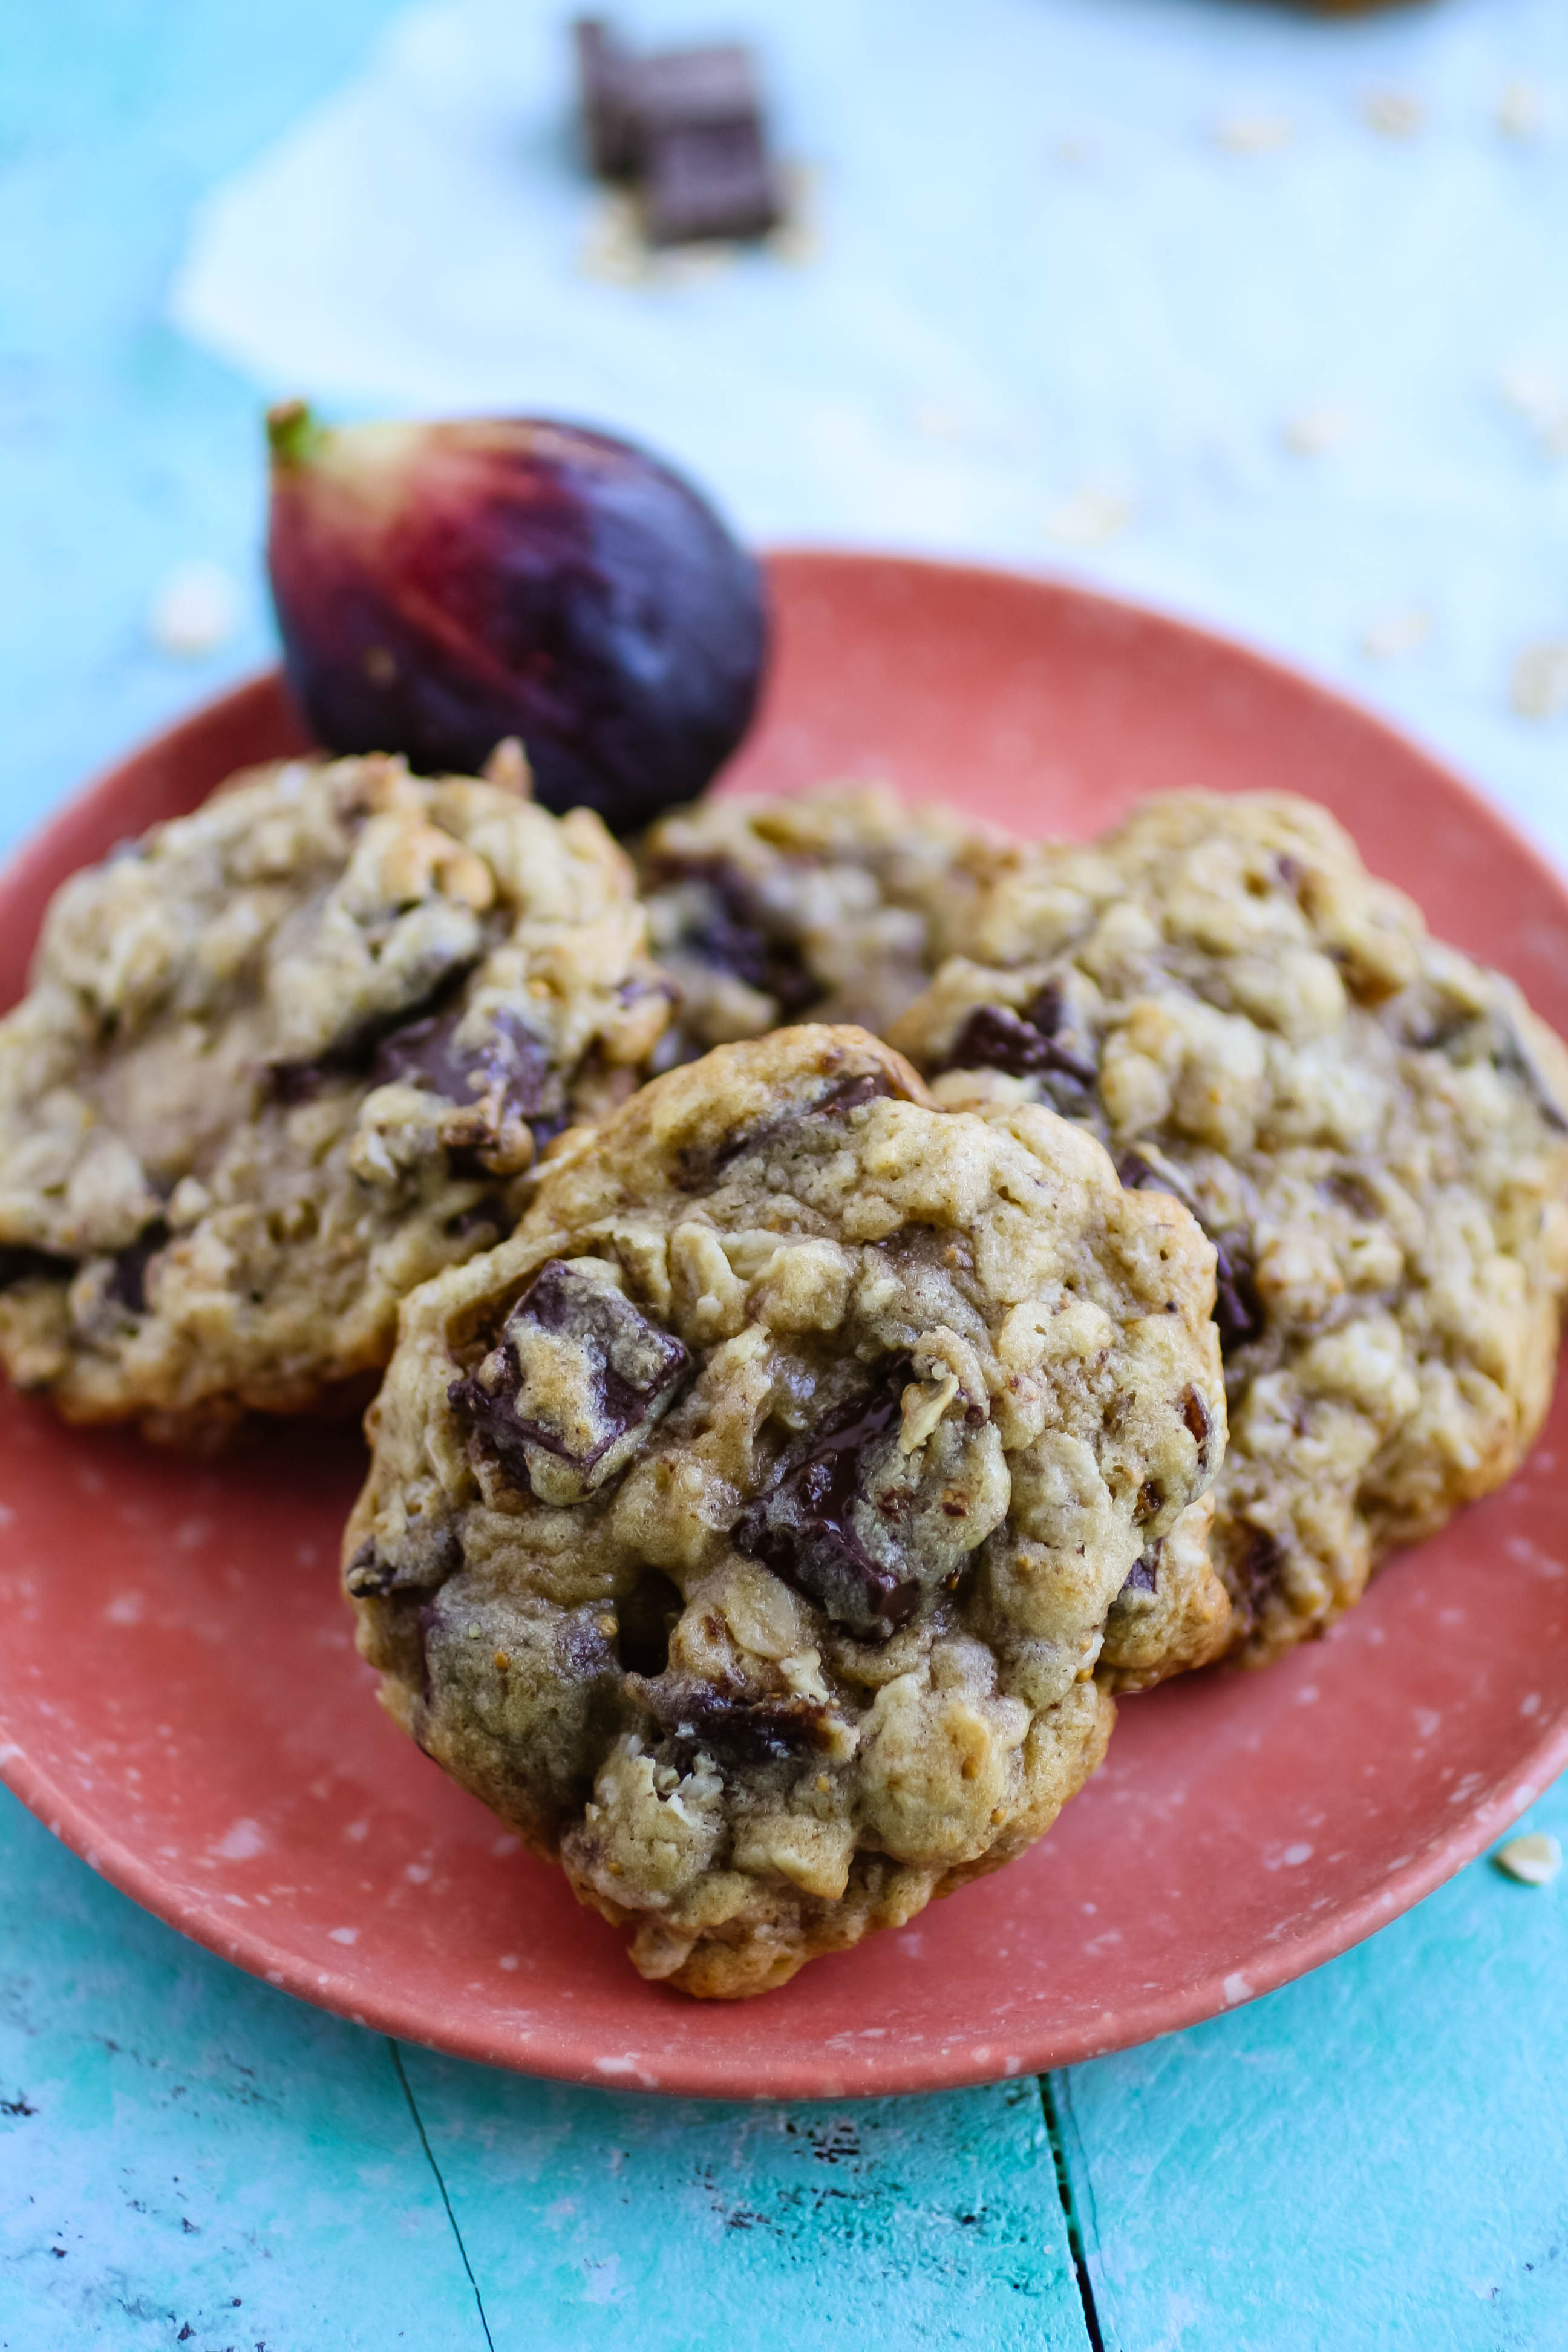 Oatmeal fig cookies with dark chocolate chunks are loaded with goodness. You'll fall in love with Oatmeal fig cookies with dark chocolate chunks!